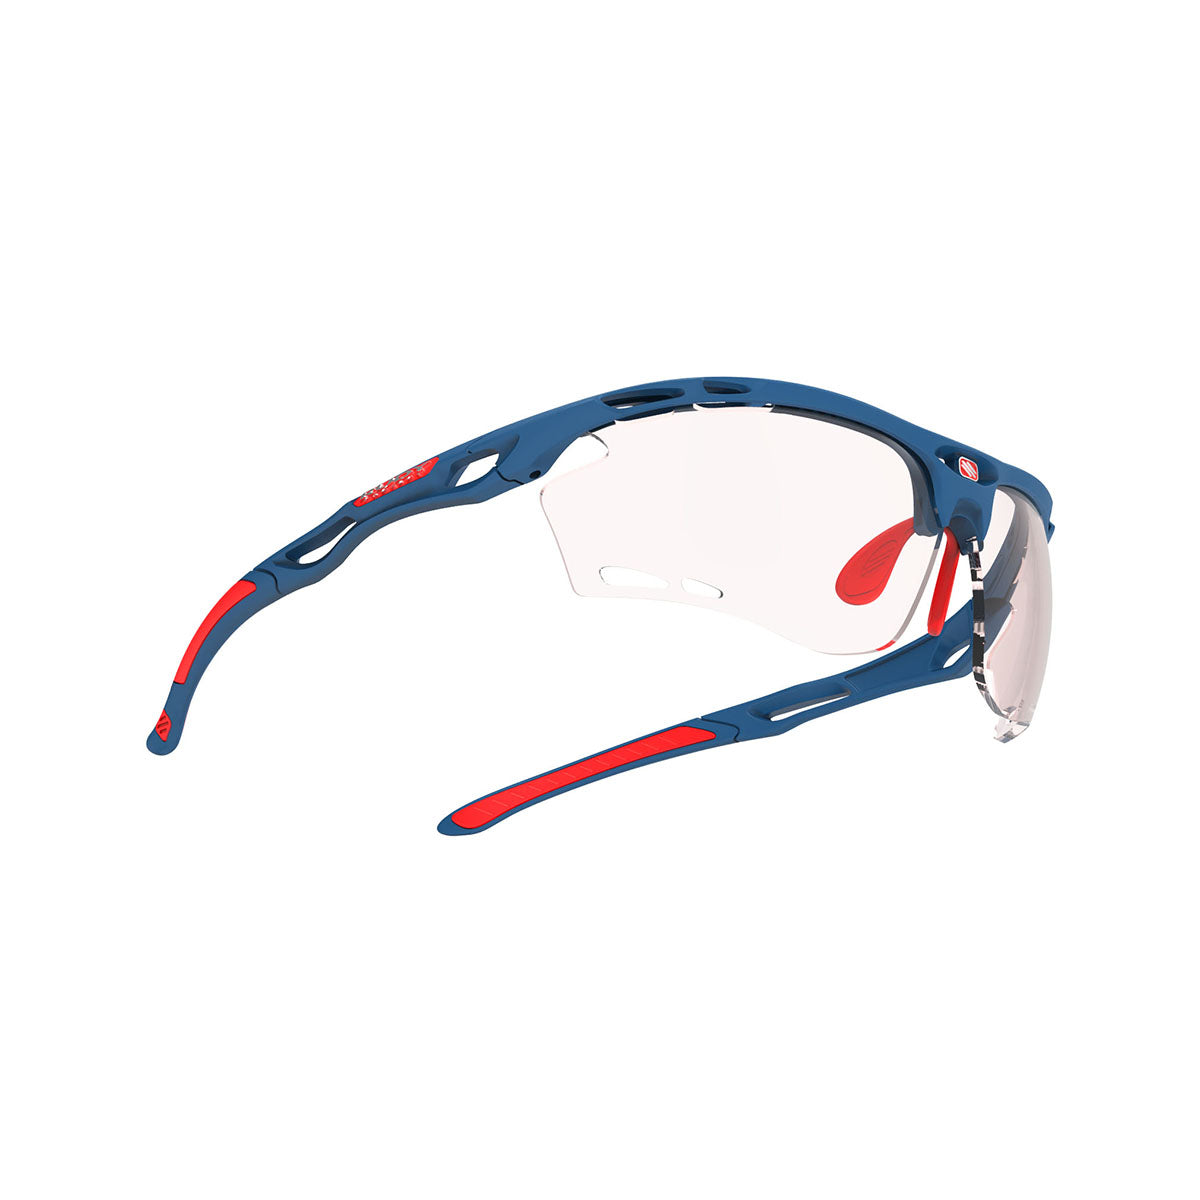 Rudy Project - Propulse - frame color: Pacific Blue Matte - lens color: ImpactX-2 Photochromic Clear to Red - Bumper Color:  - photo angle: Bottom Front Angle Variant Hover Image